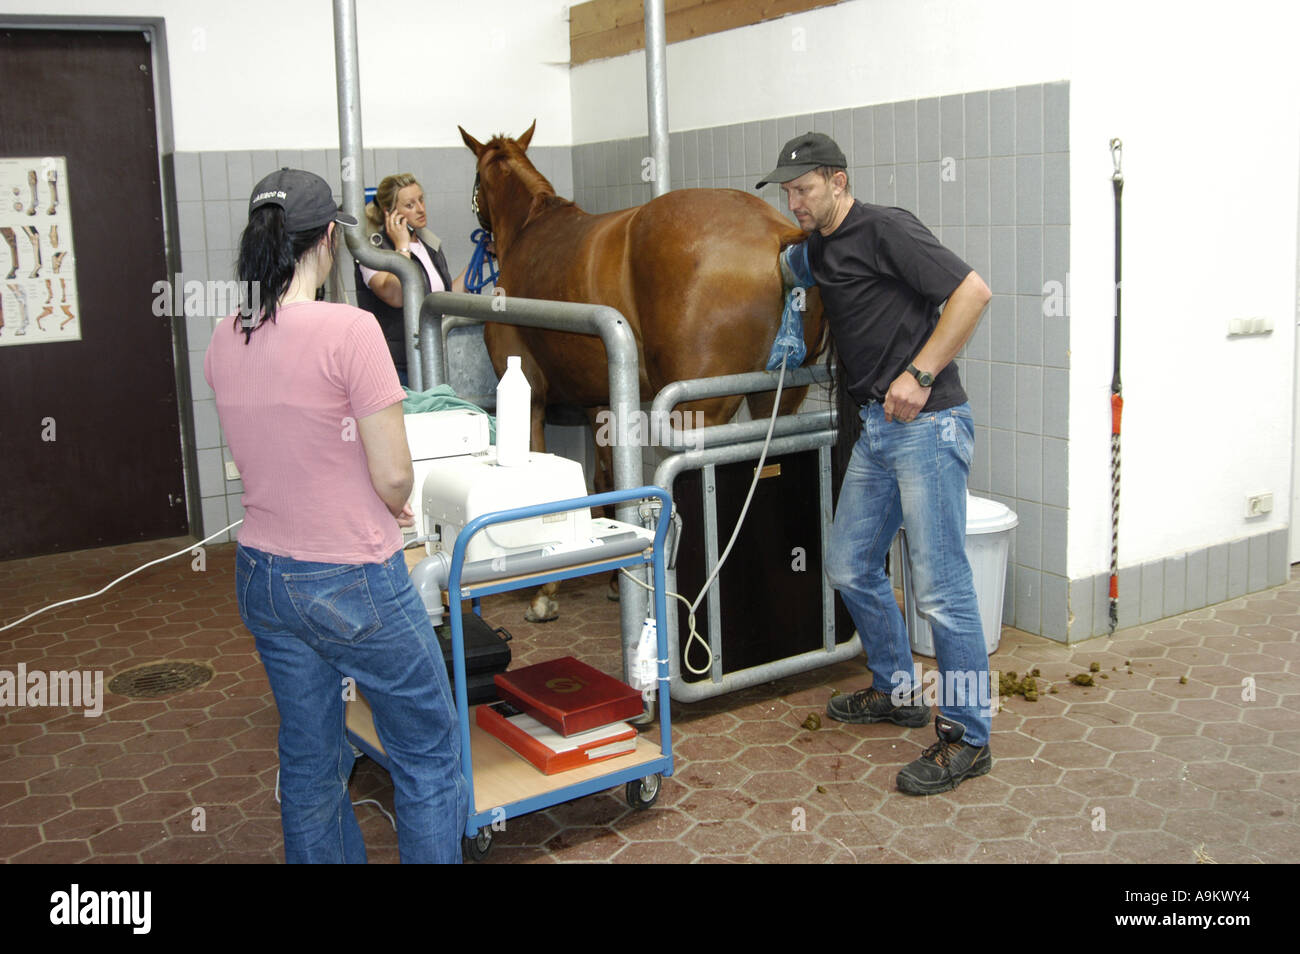 horse at the veterinarian - Stock Image